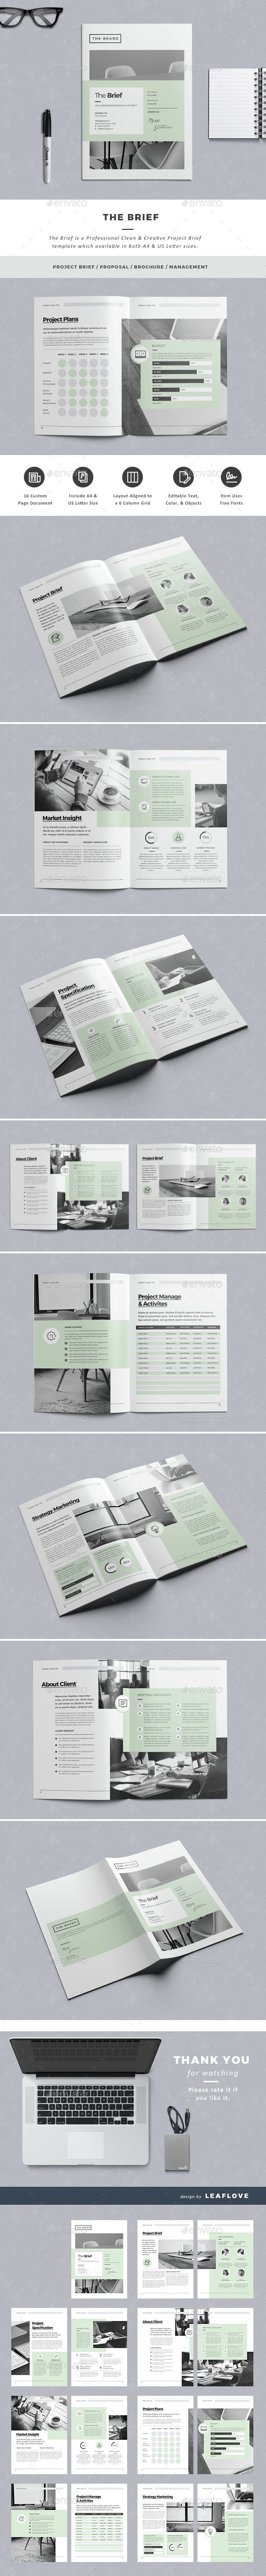 The Brief  Indesign Template Resume Template   Design